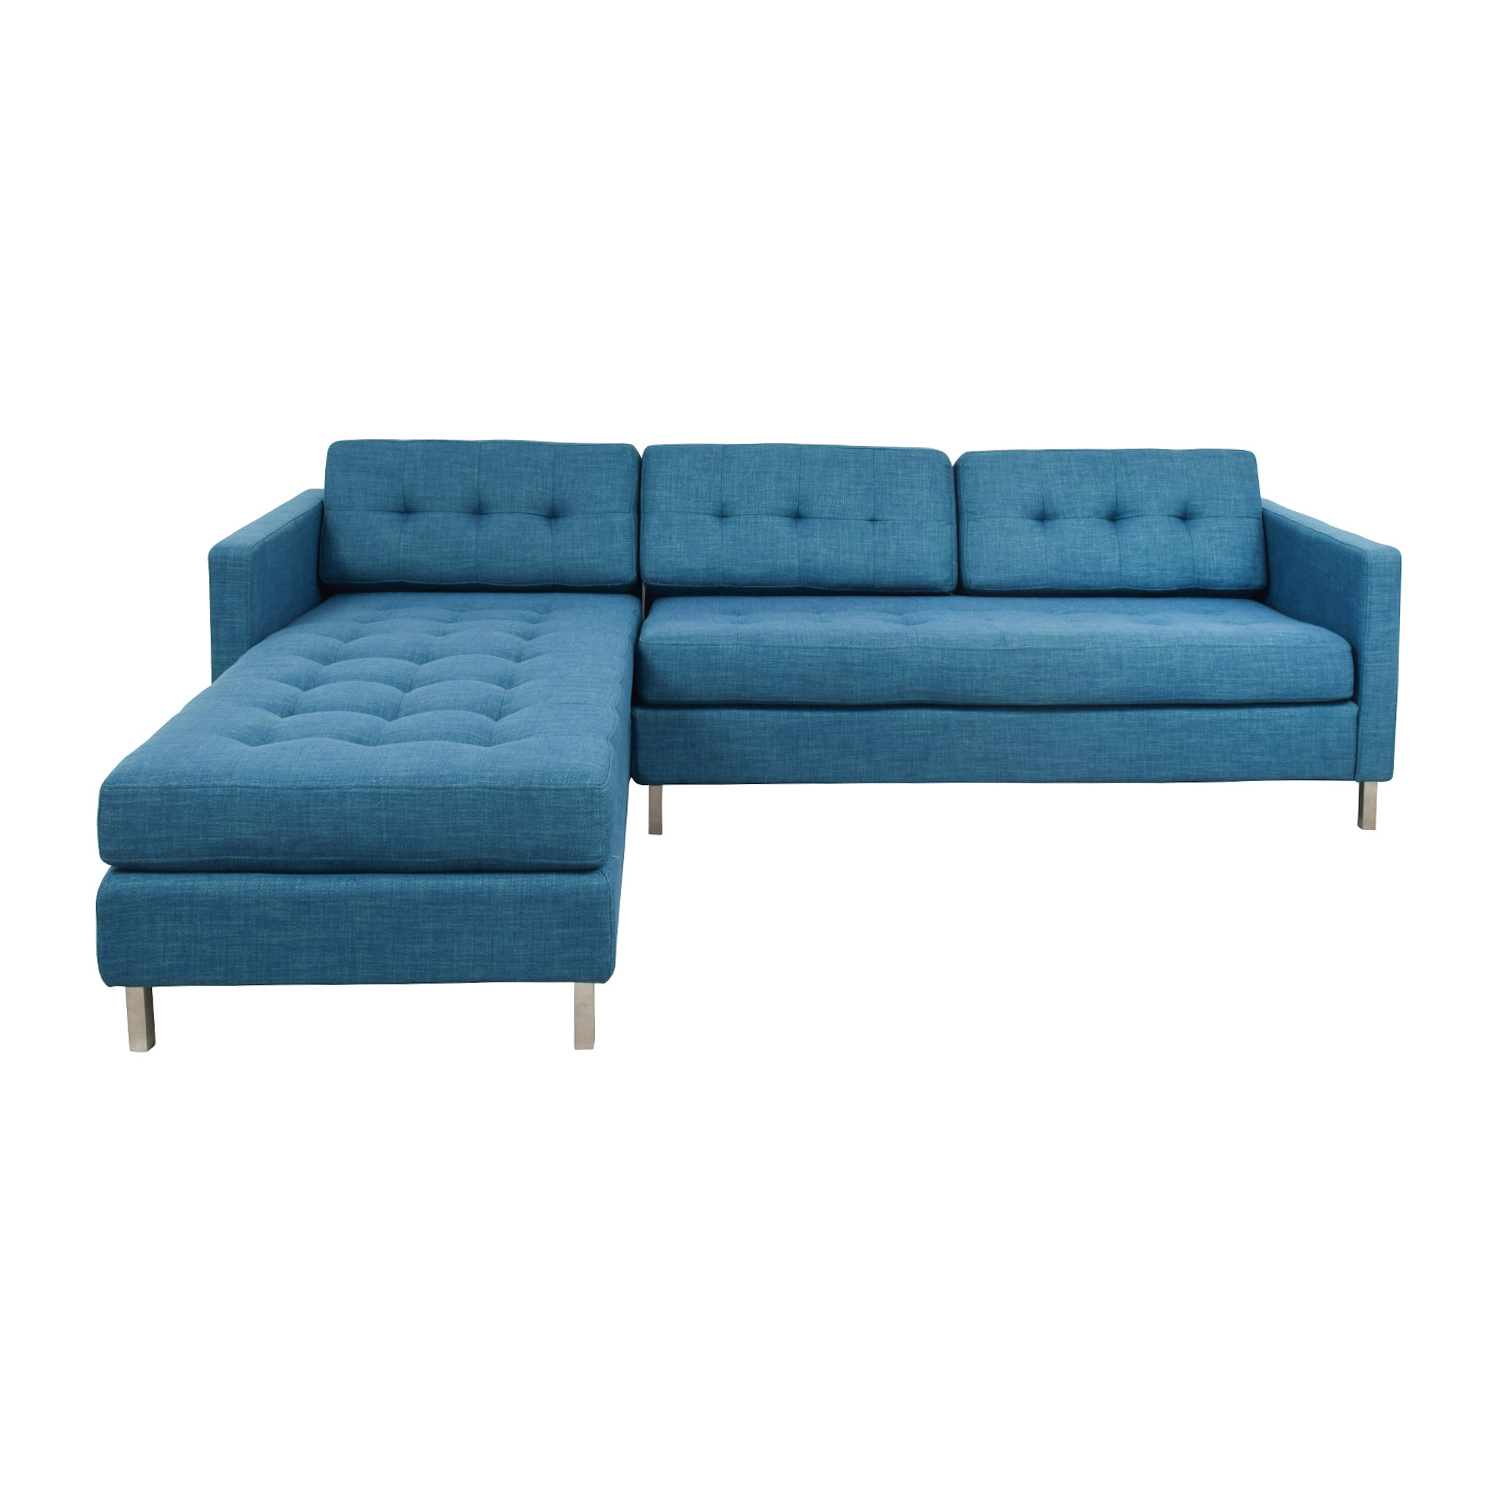 33% OFF CB2 CB2 Ditto II Peacock Sectional Sofa Sofas